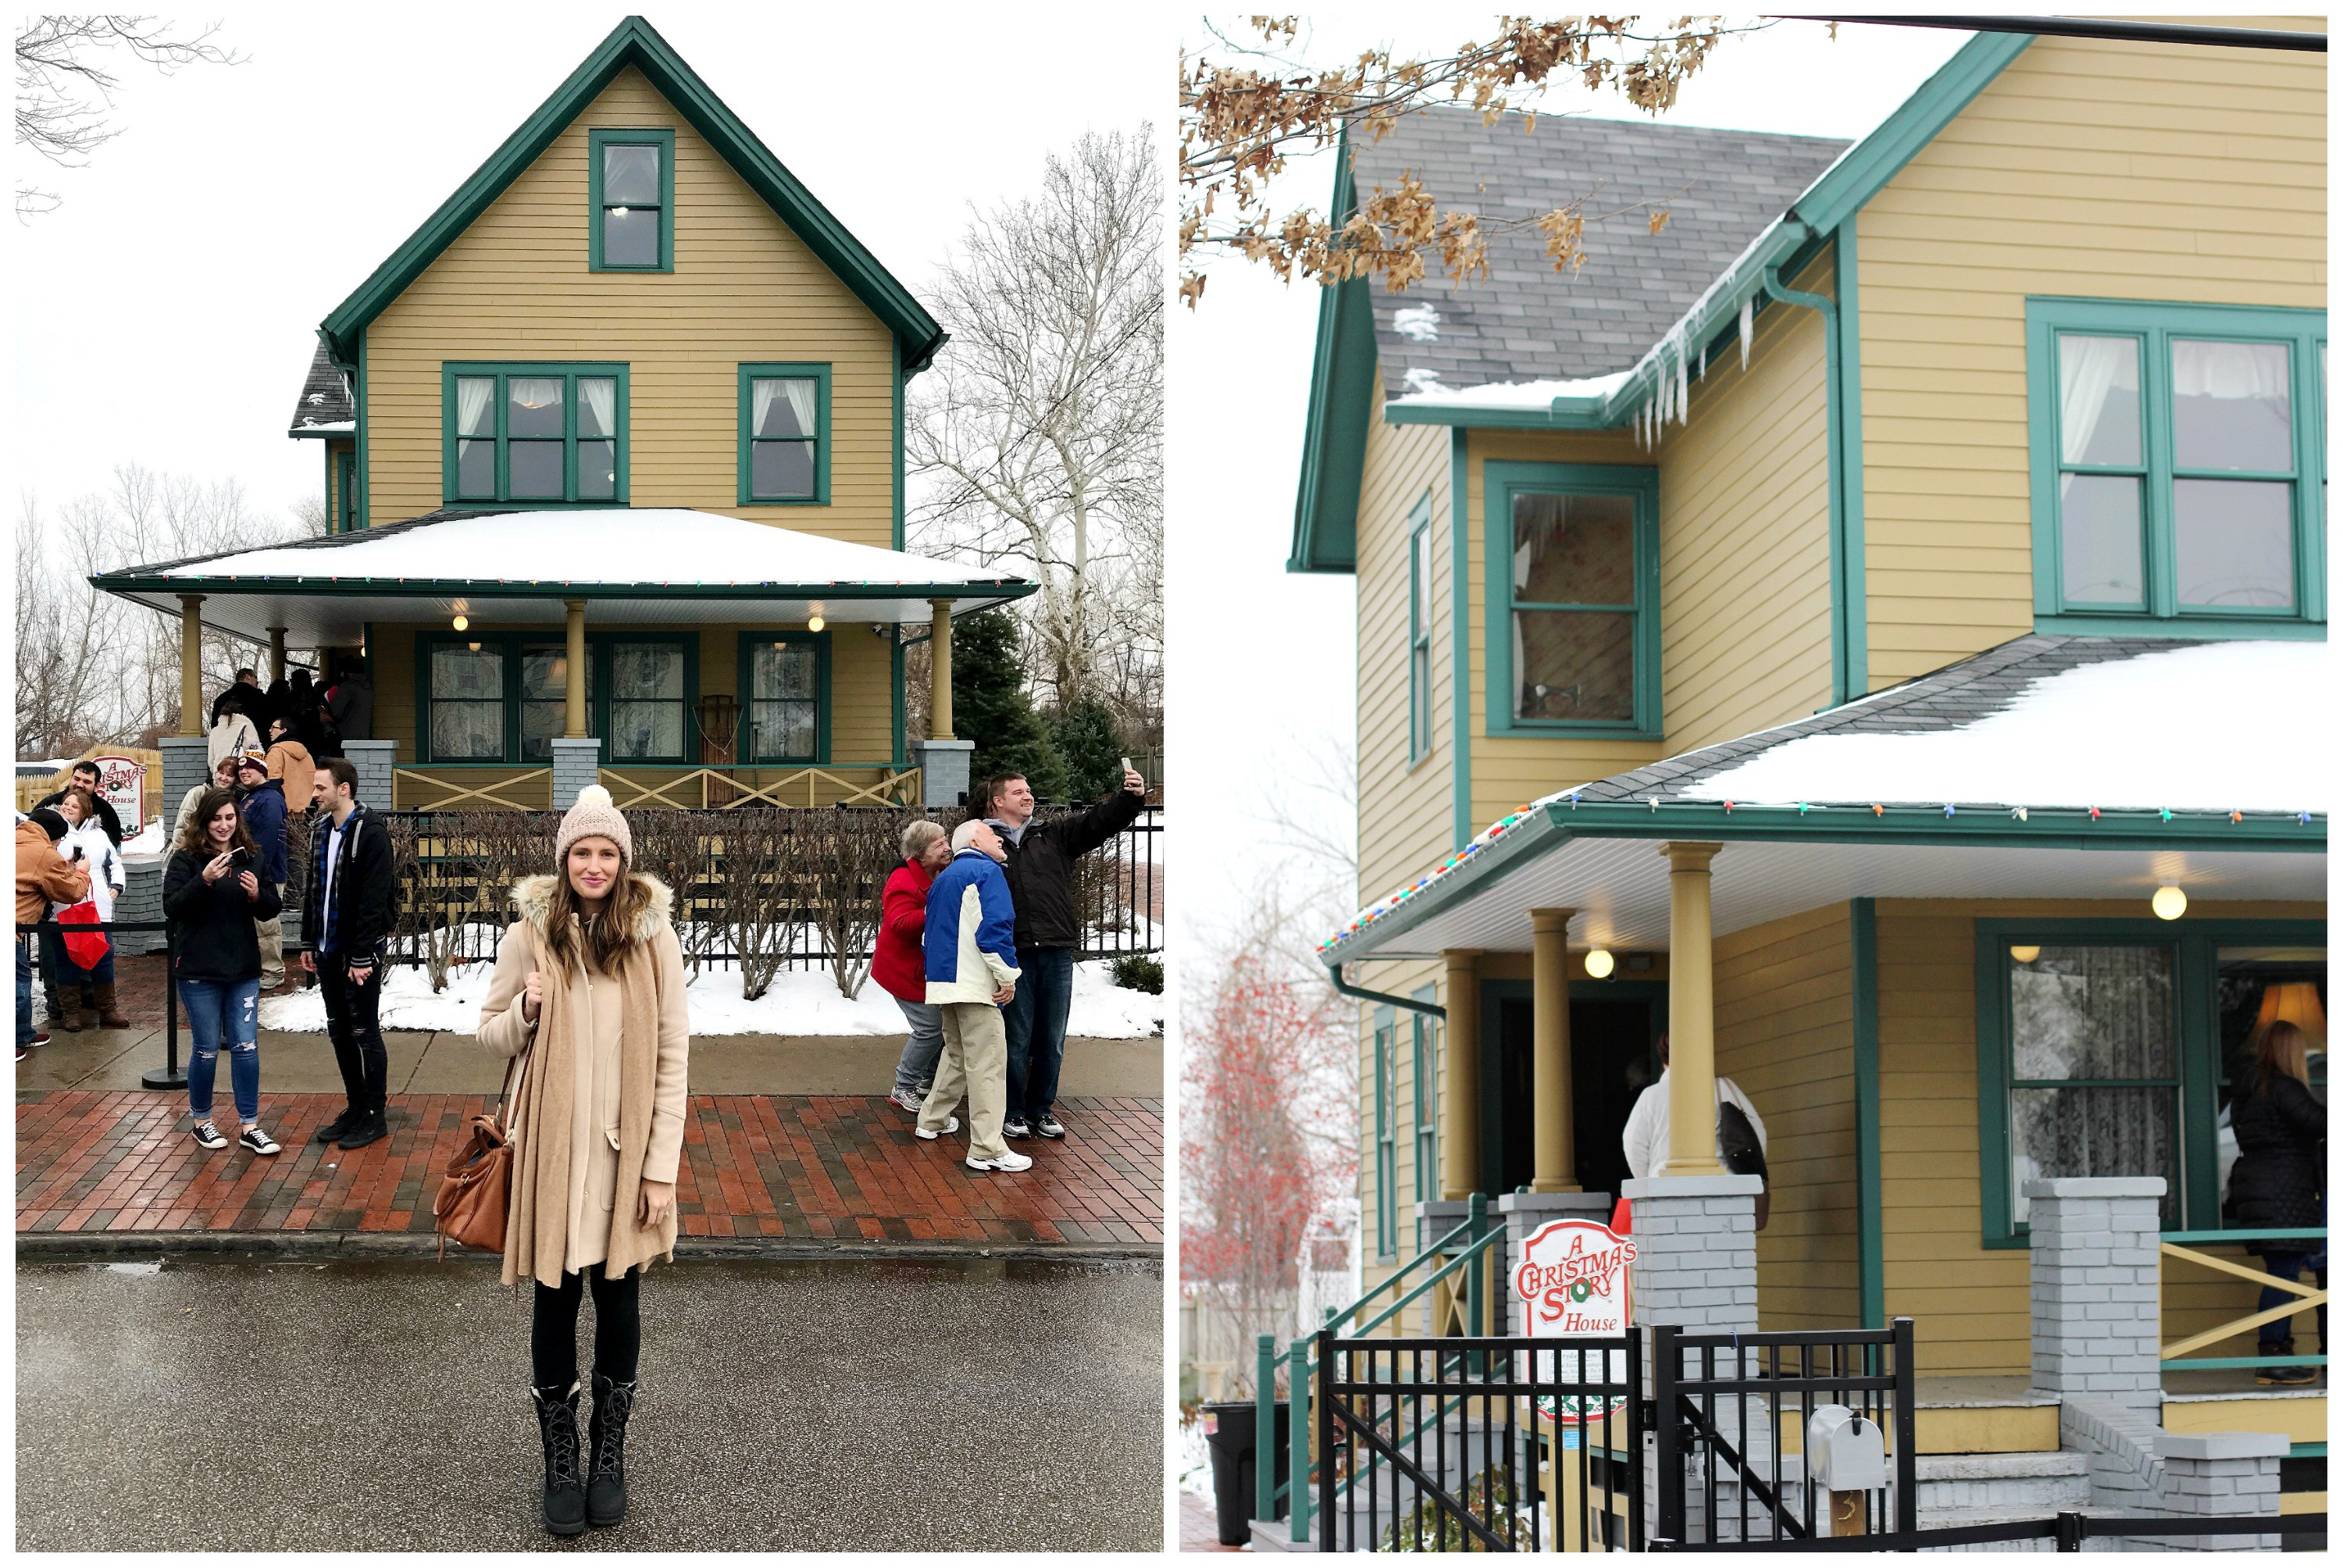 A Christmas Story House in Cleveland